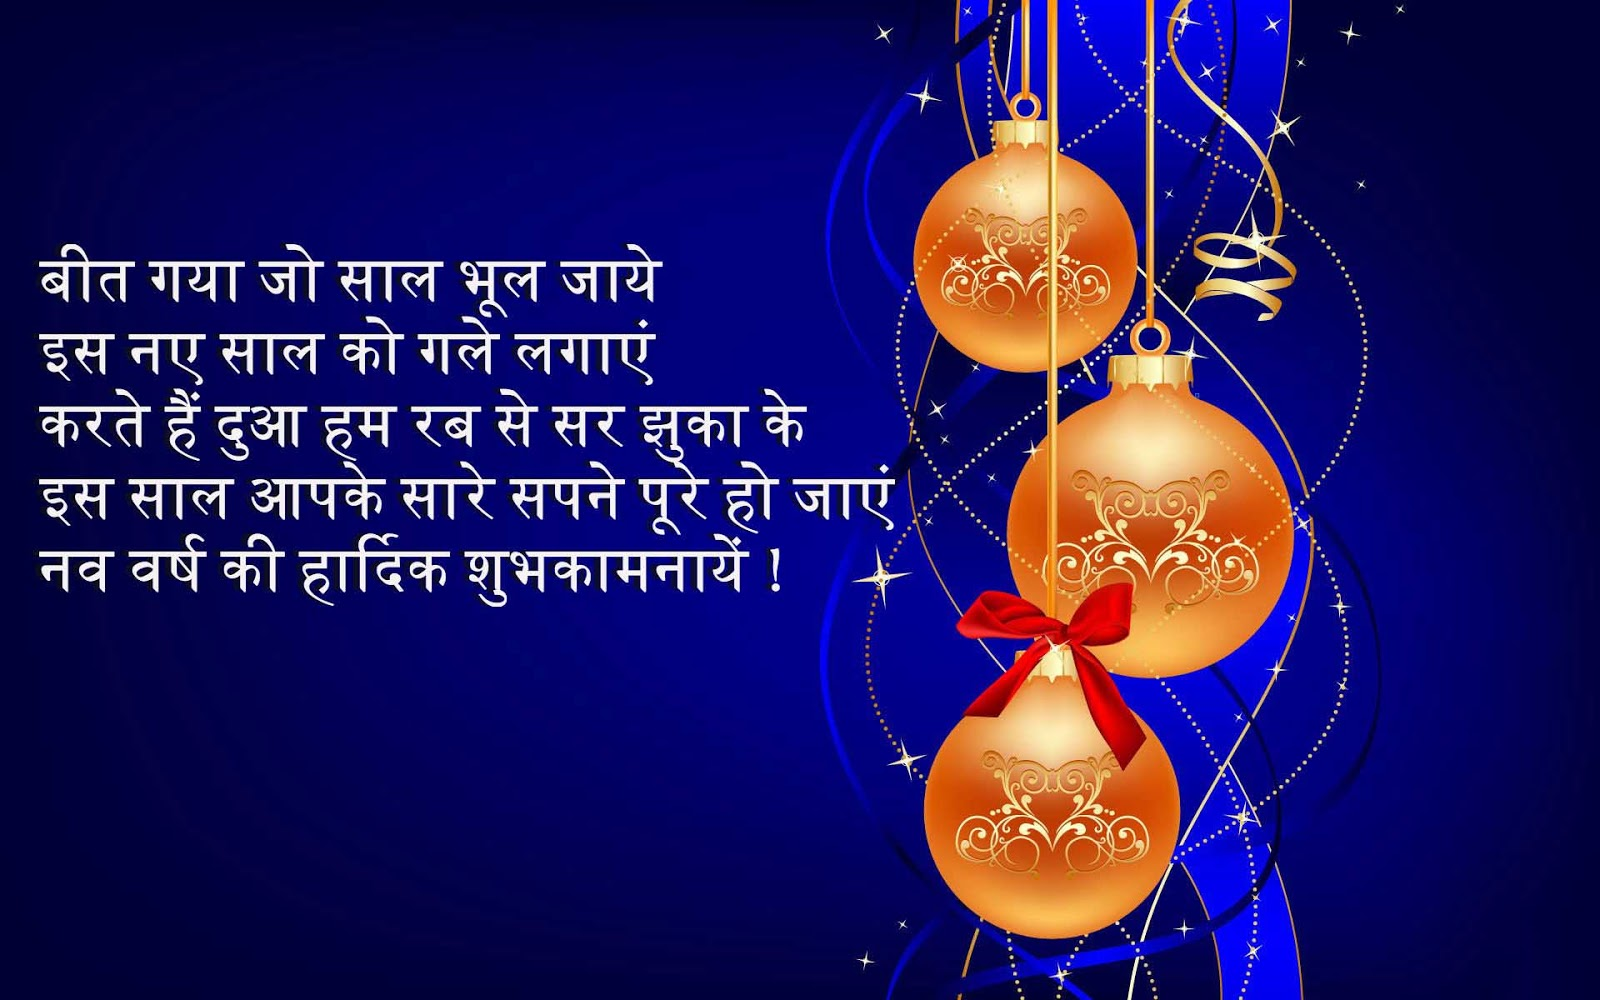 Happy New Year 2019 Hindi Shayari Images